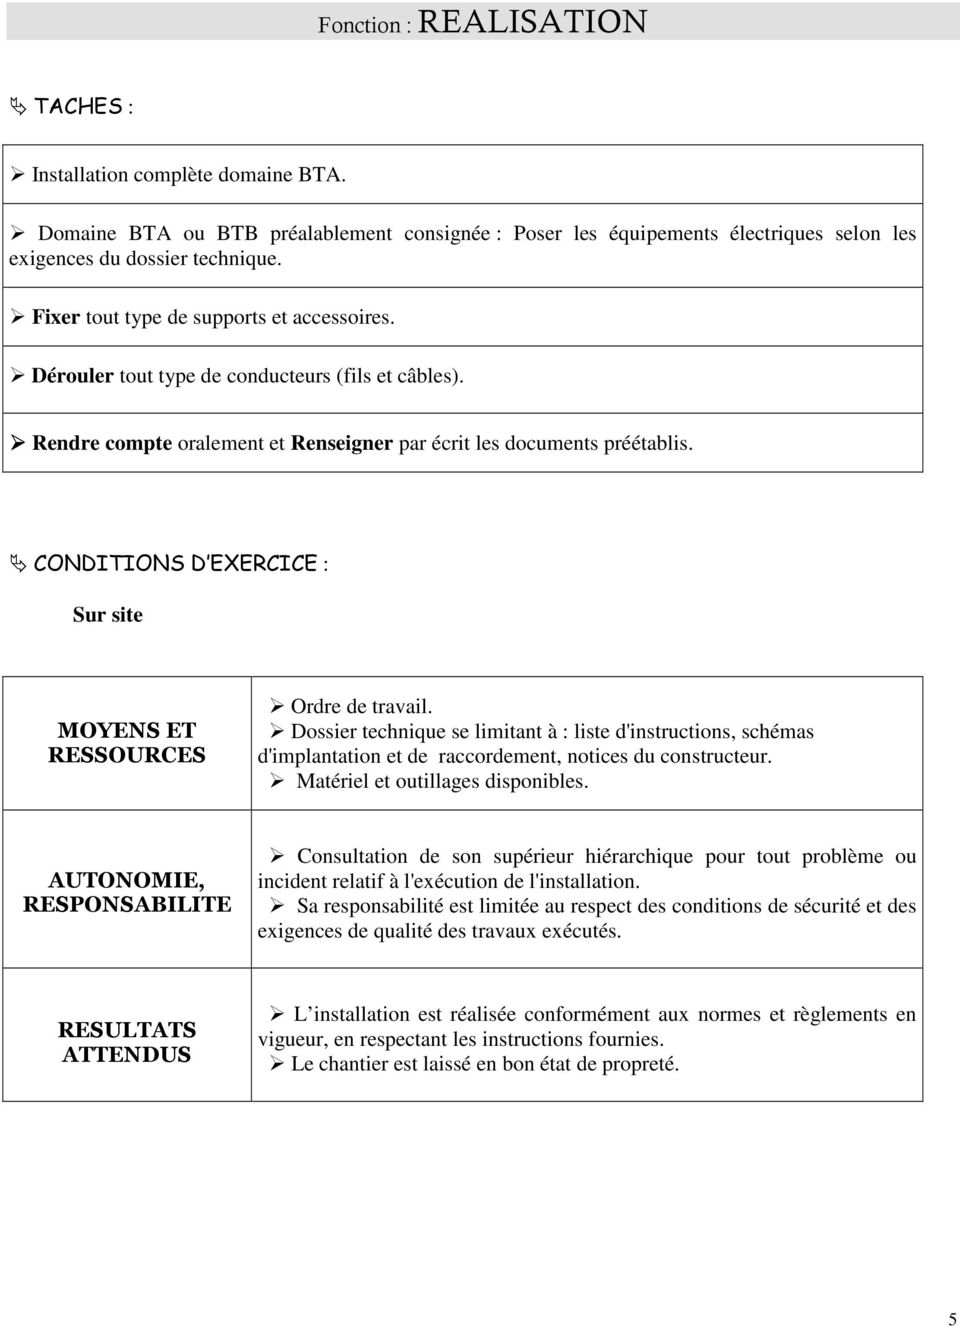 CONDITIONS D EXERCICE : Sur site MOYENS ET RESSOURCES Ordre de travail. Dossier technique se limitant à : liste d'instructions, schémas d'implantation et de raccordement, notices du constructeur.